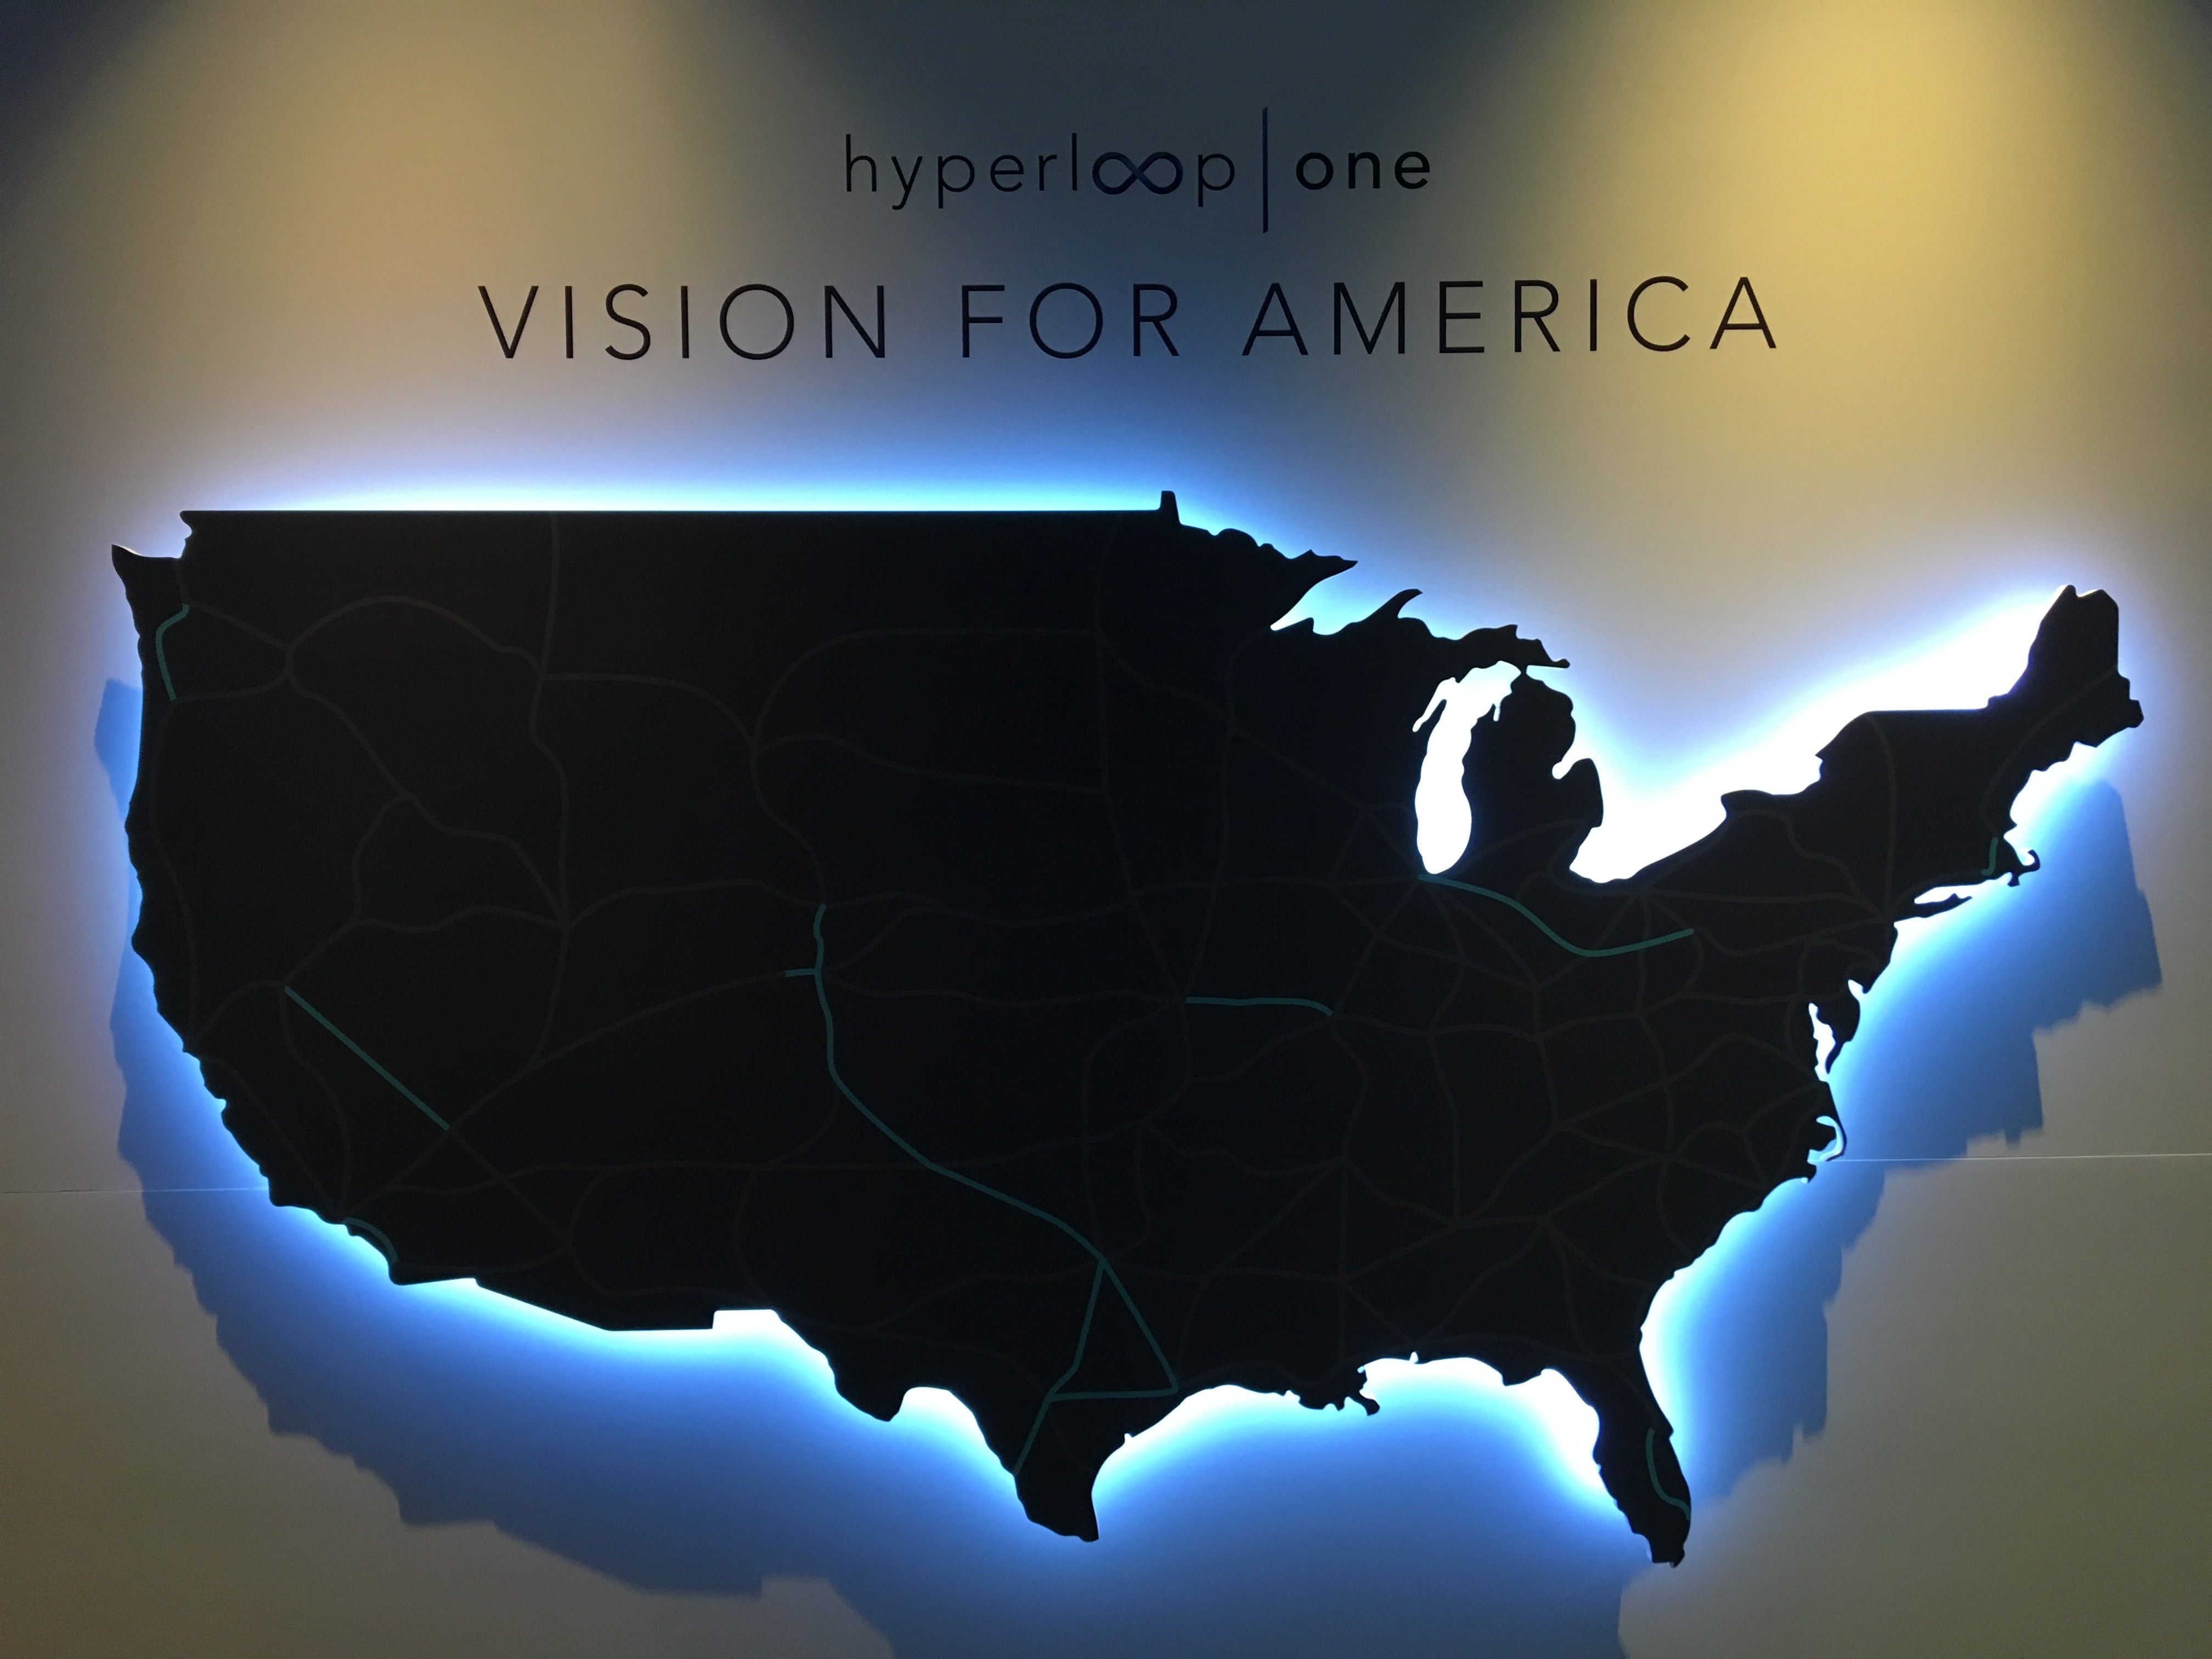 I Stared Into The Political Heart Of The Hyperloop